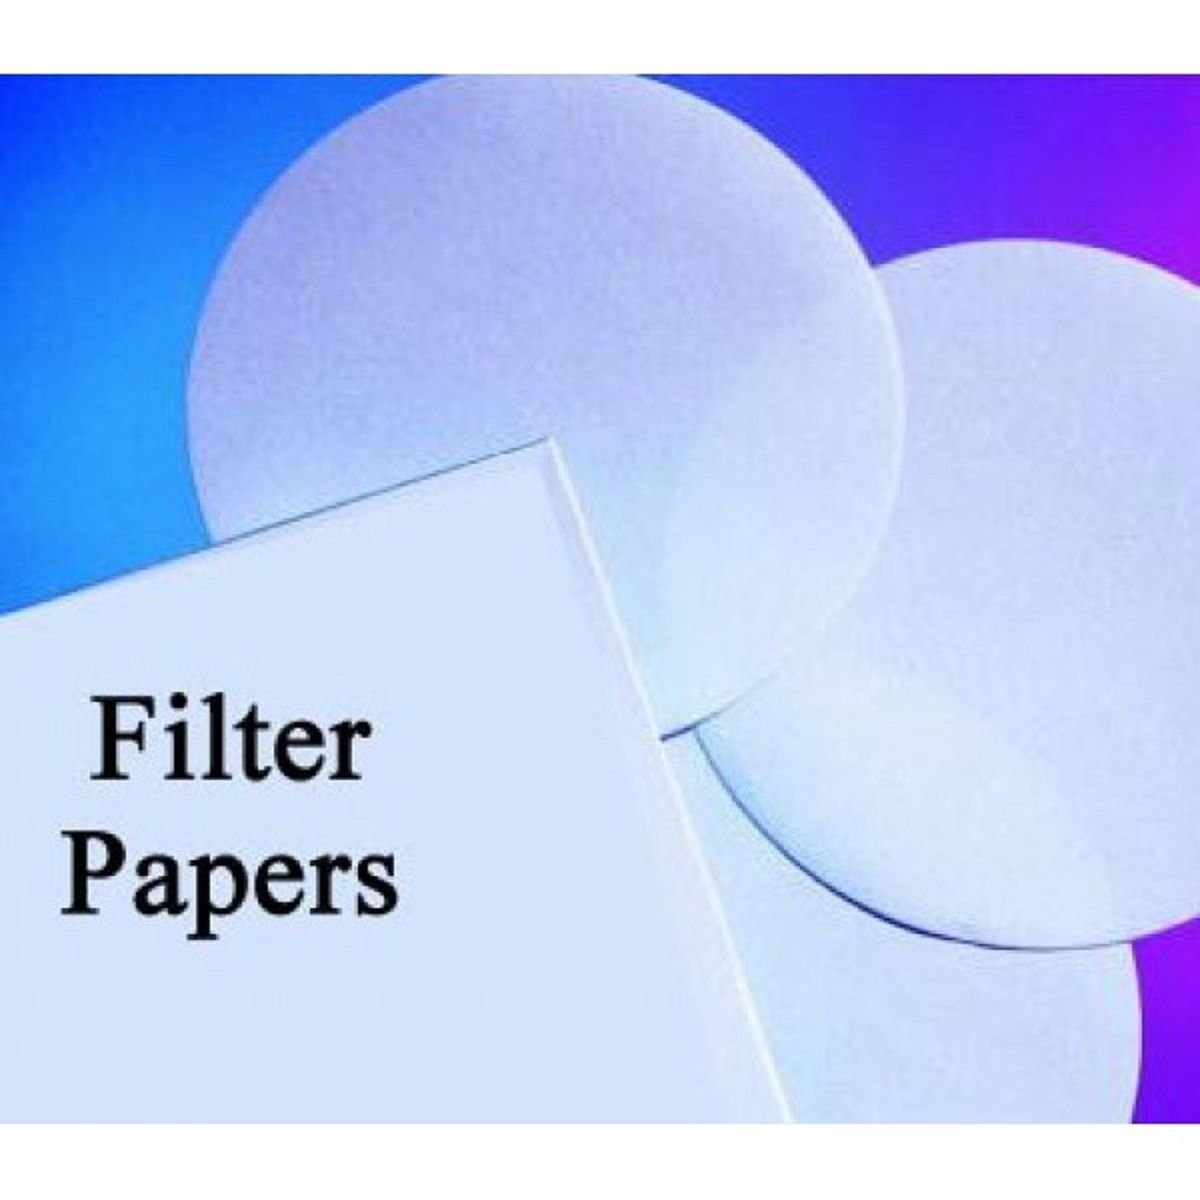 FILTER PAPER 9cm – Filtration Filters Papers Home Brew Strainer Strainers Sheet